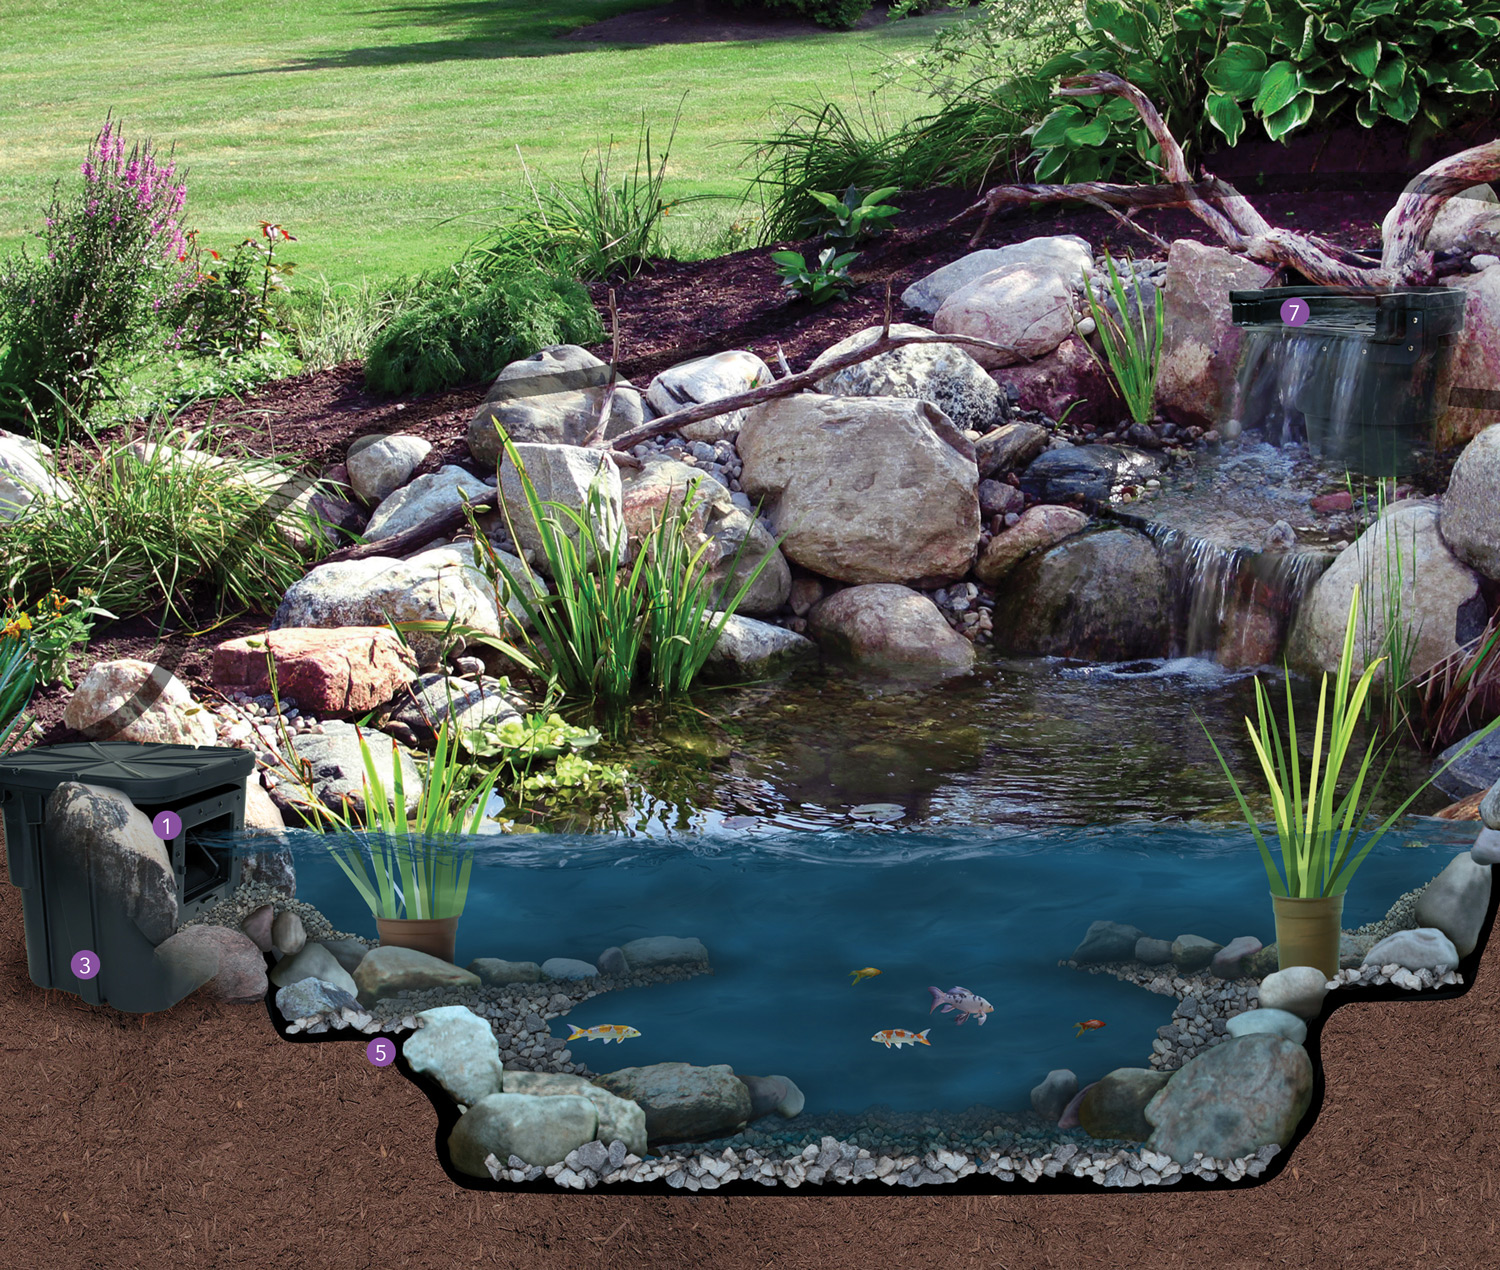 Water garden smartrain for Pond and garden